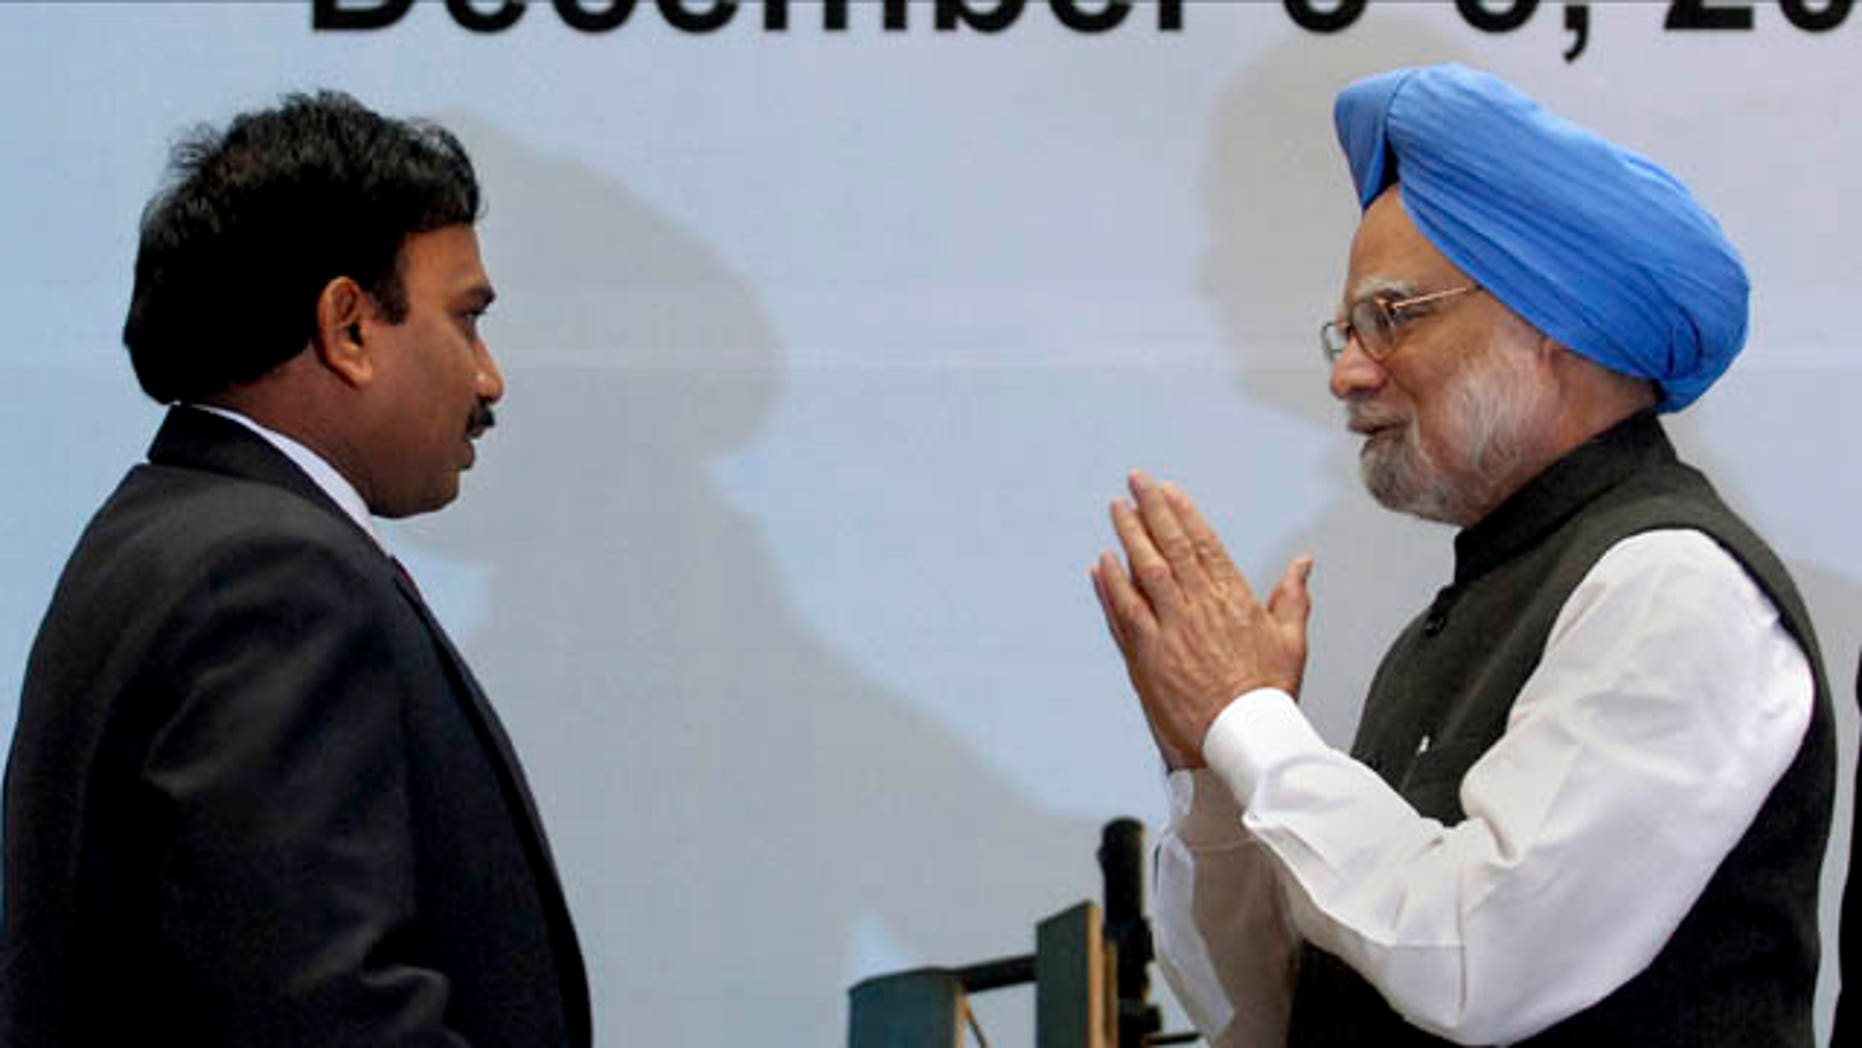 This Dec. 4, 2009 file photo shows Indian Prime Minister Manmohan Singh, right, greeting then Telecoms Minister Andimuthu Raja in New Delhi, India. India's ruling Congress party was Sunday trying to resolve differences with a key regional ally that has withdrawn its ministers from the government. Raja allegedly sold the 2G mobile phone spectrum at throwaway prices in 2008 leading to losses of $36 billion in potential revenue by not auctioning the licenses. Raja's arrest and searches at his home and at the offices of a television network owned by the DMK have strained relations between the government and its ally. (AP/Tribhuvan Tiwari/Outlook)